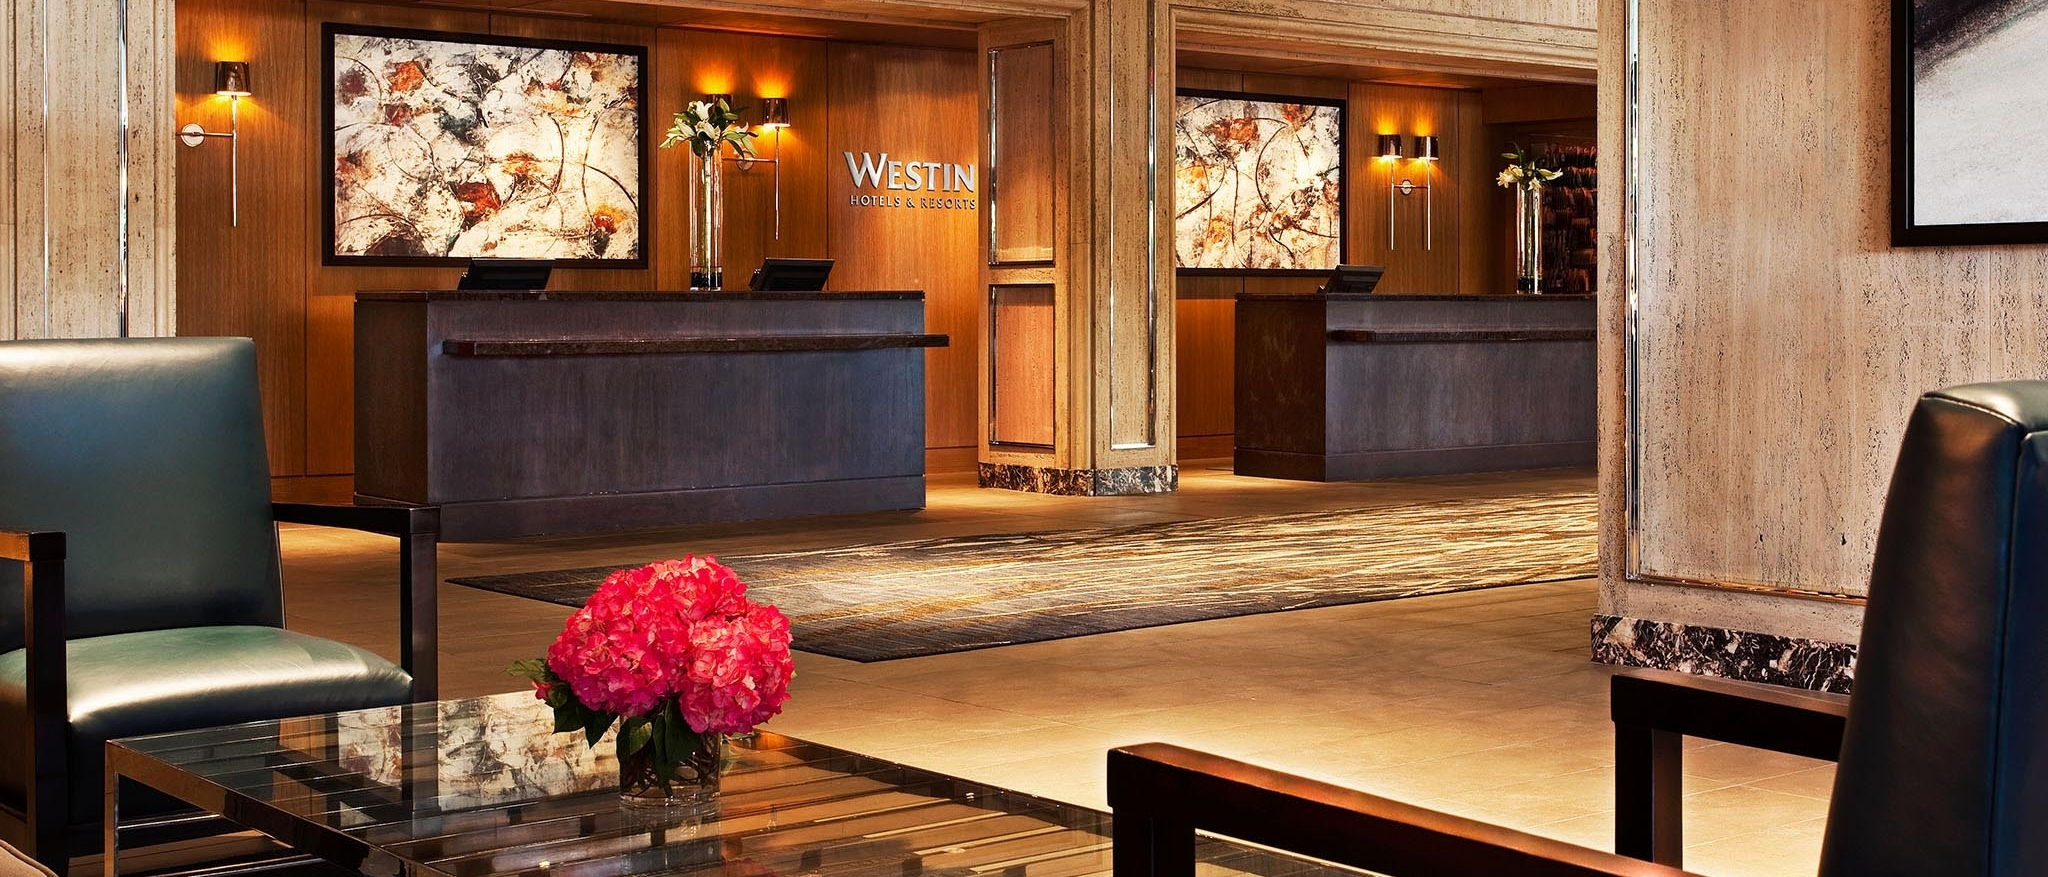 The Westin Oaks Houston at the Galleria - Lobby